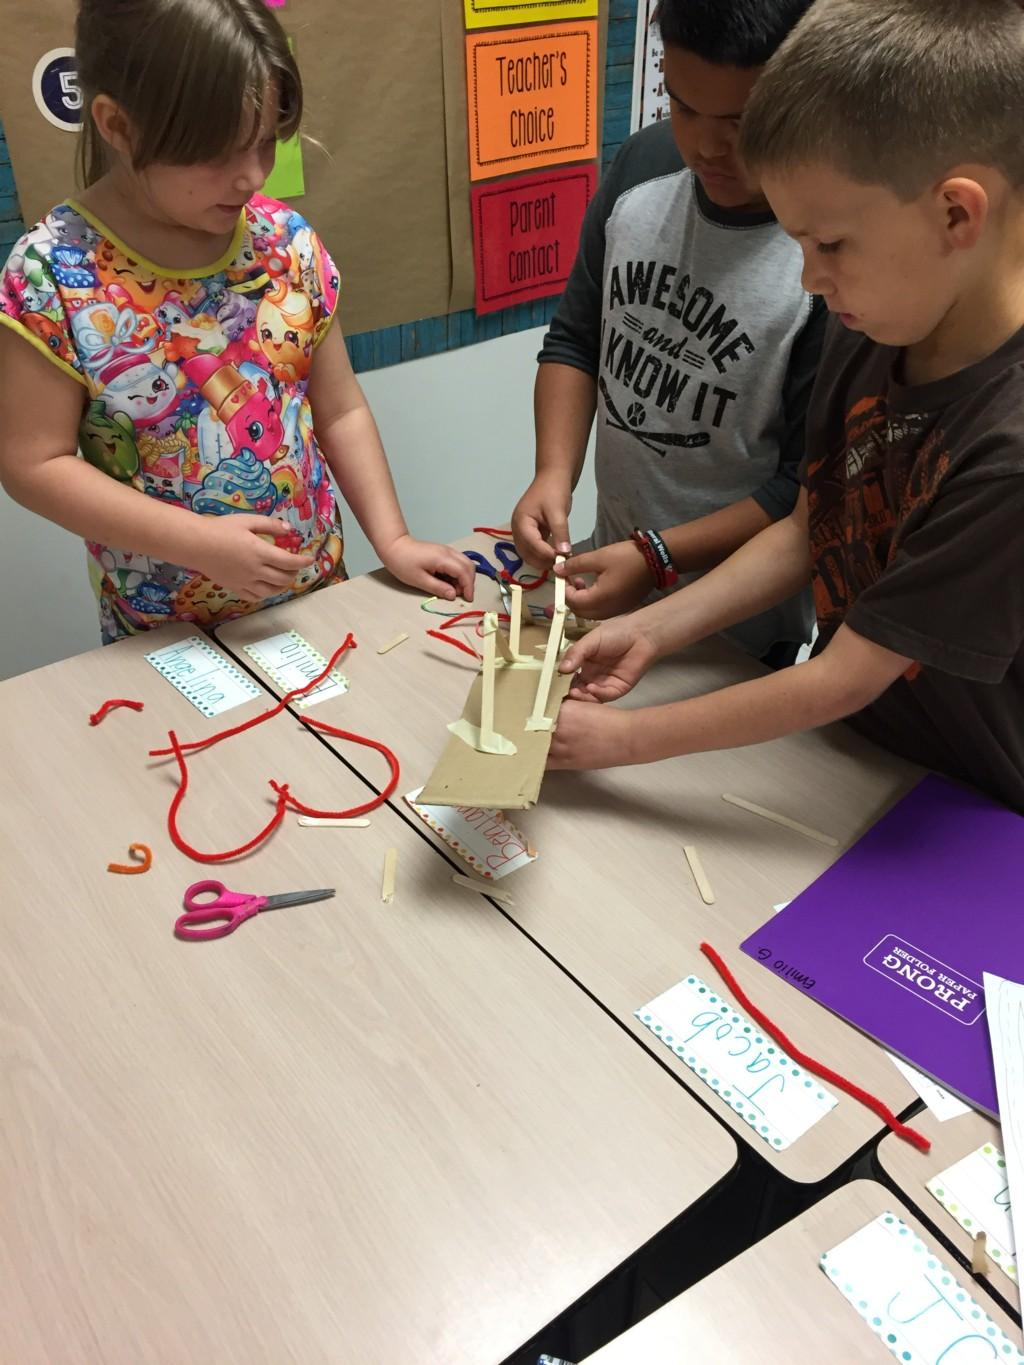 Students worked as a team combining different types of matter together to create bridges or towers.